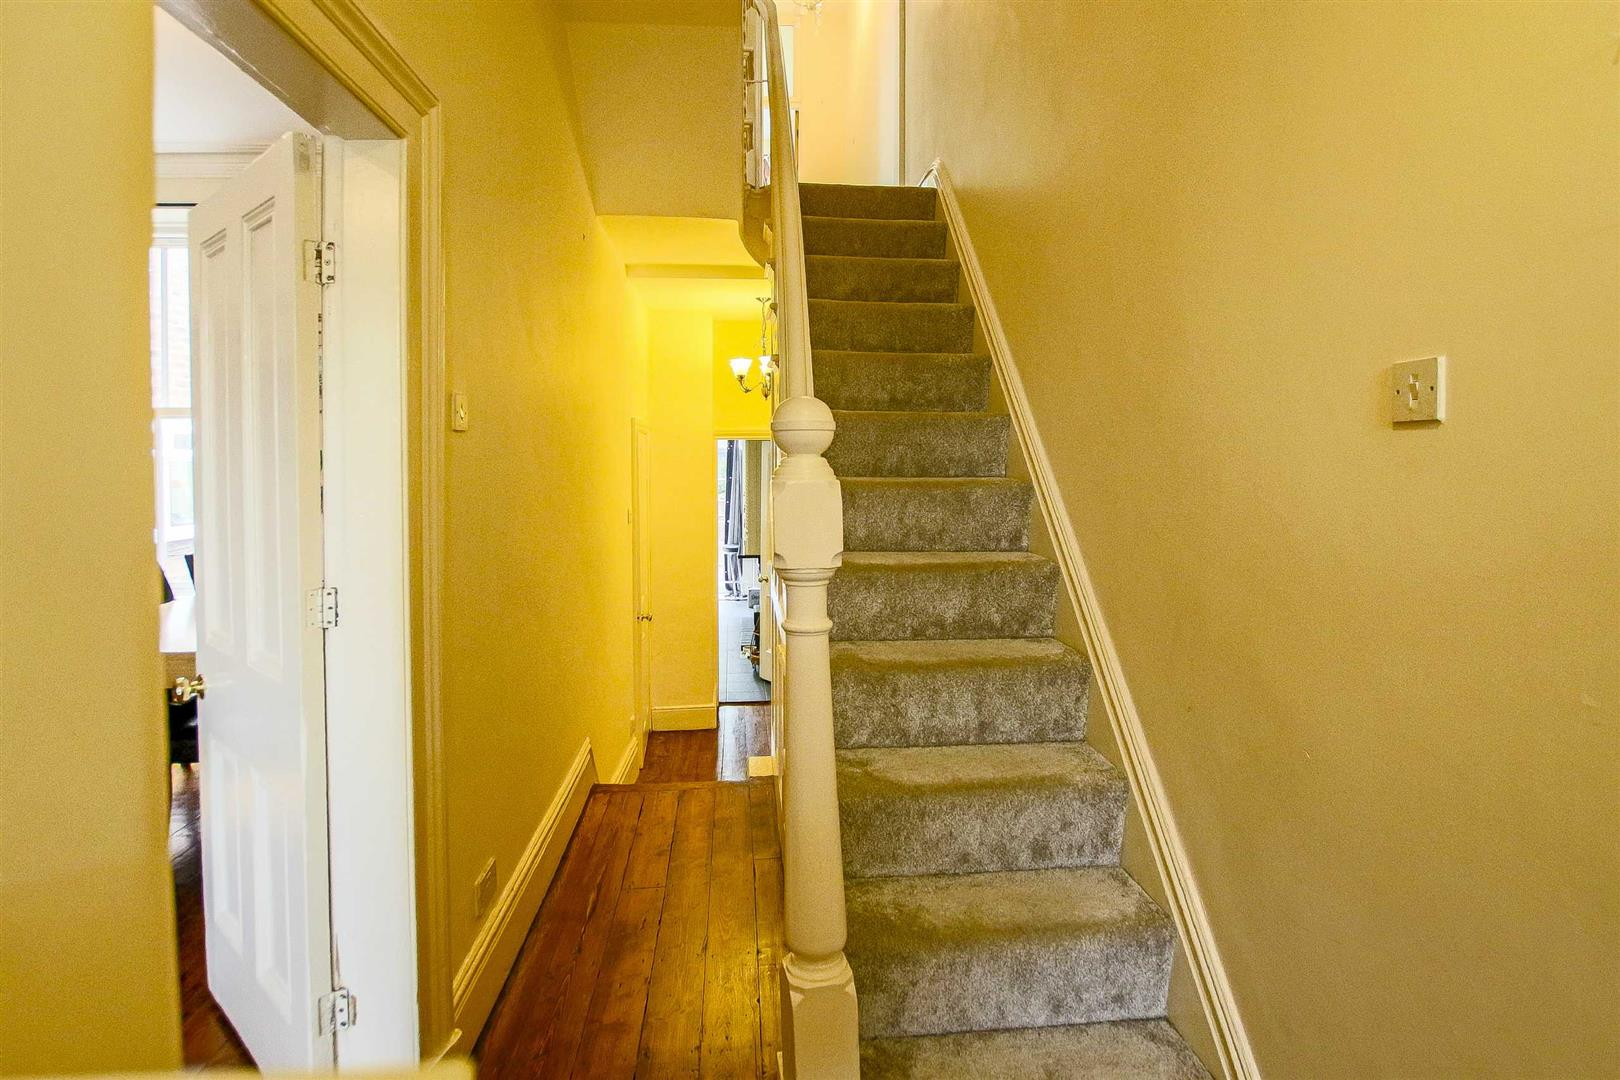 5 Bedroom Terraced House For Sale - Image 23